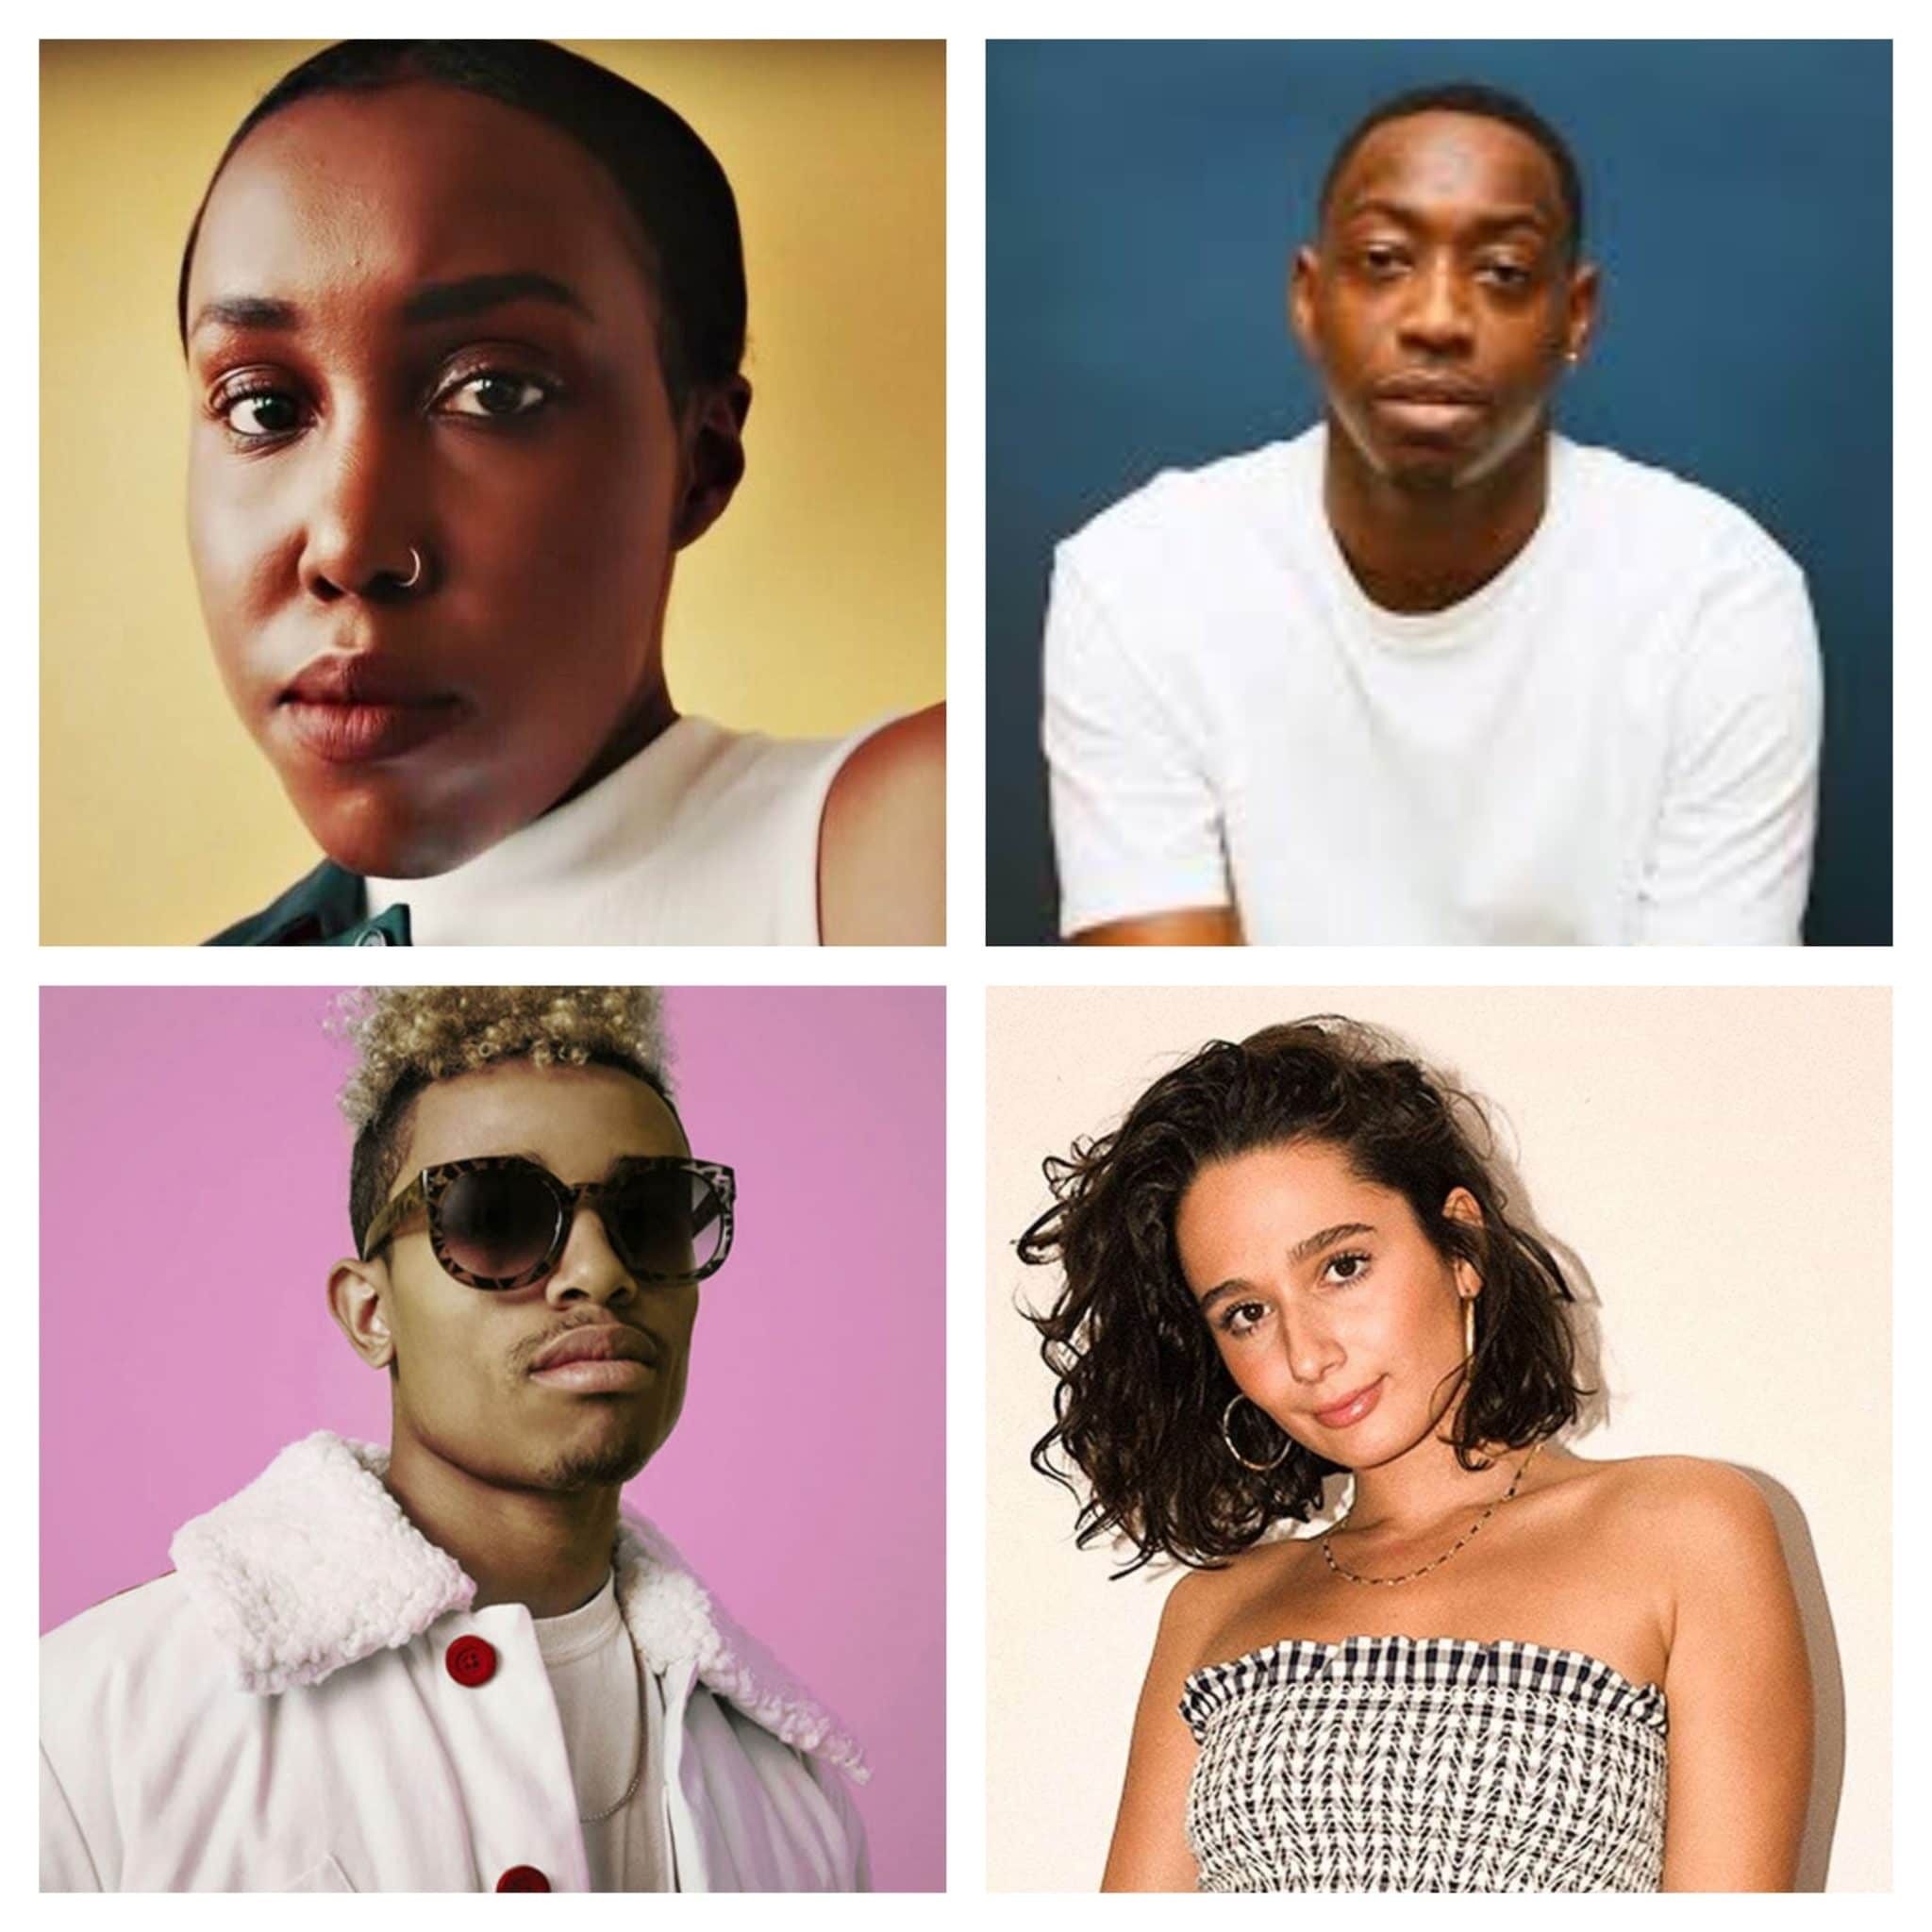 15 R&B / Soul Artists to Watch in 2020